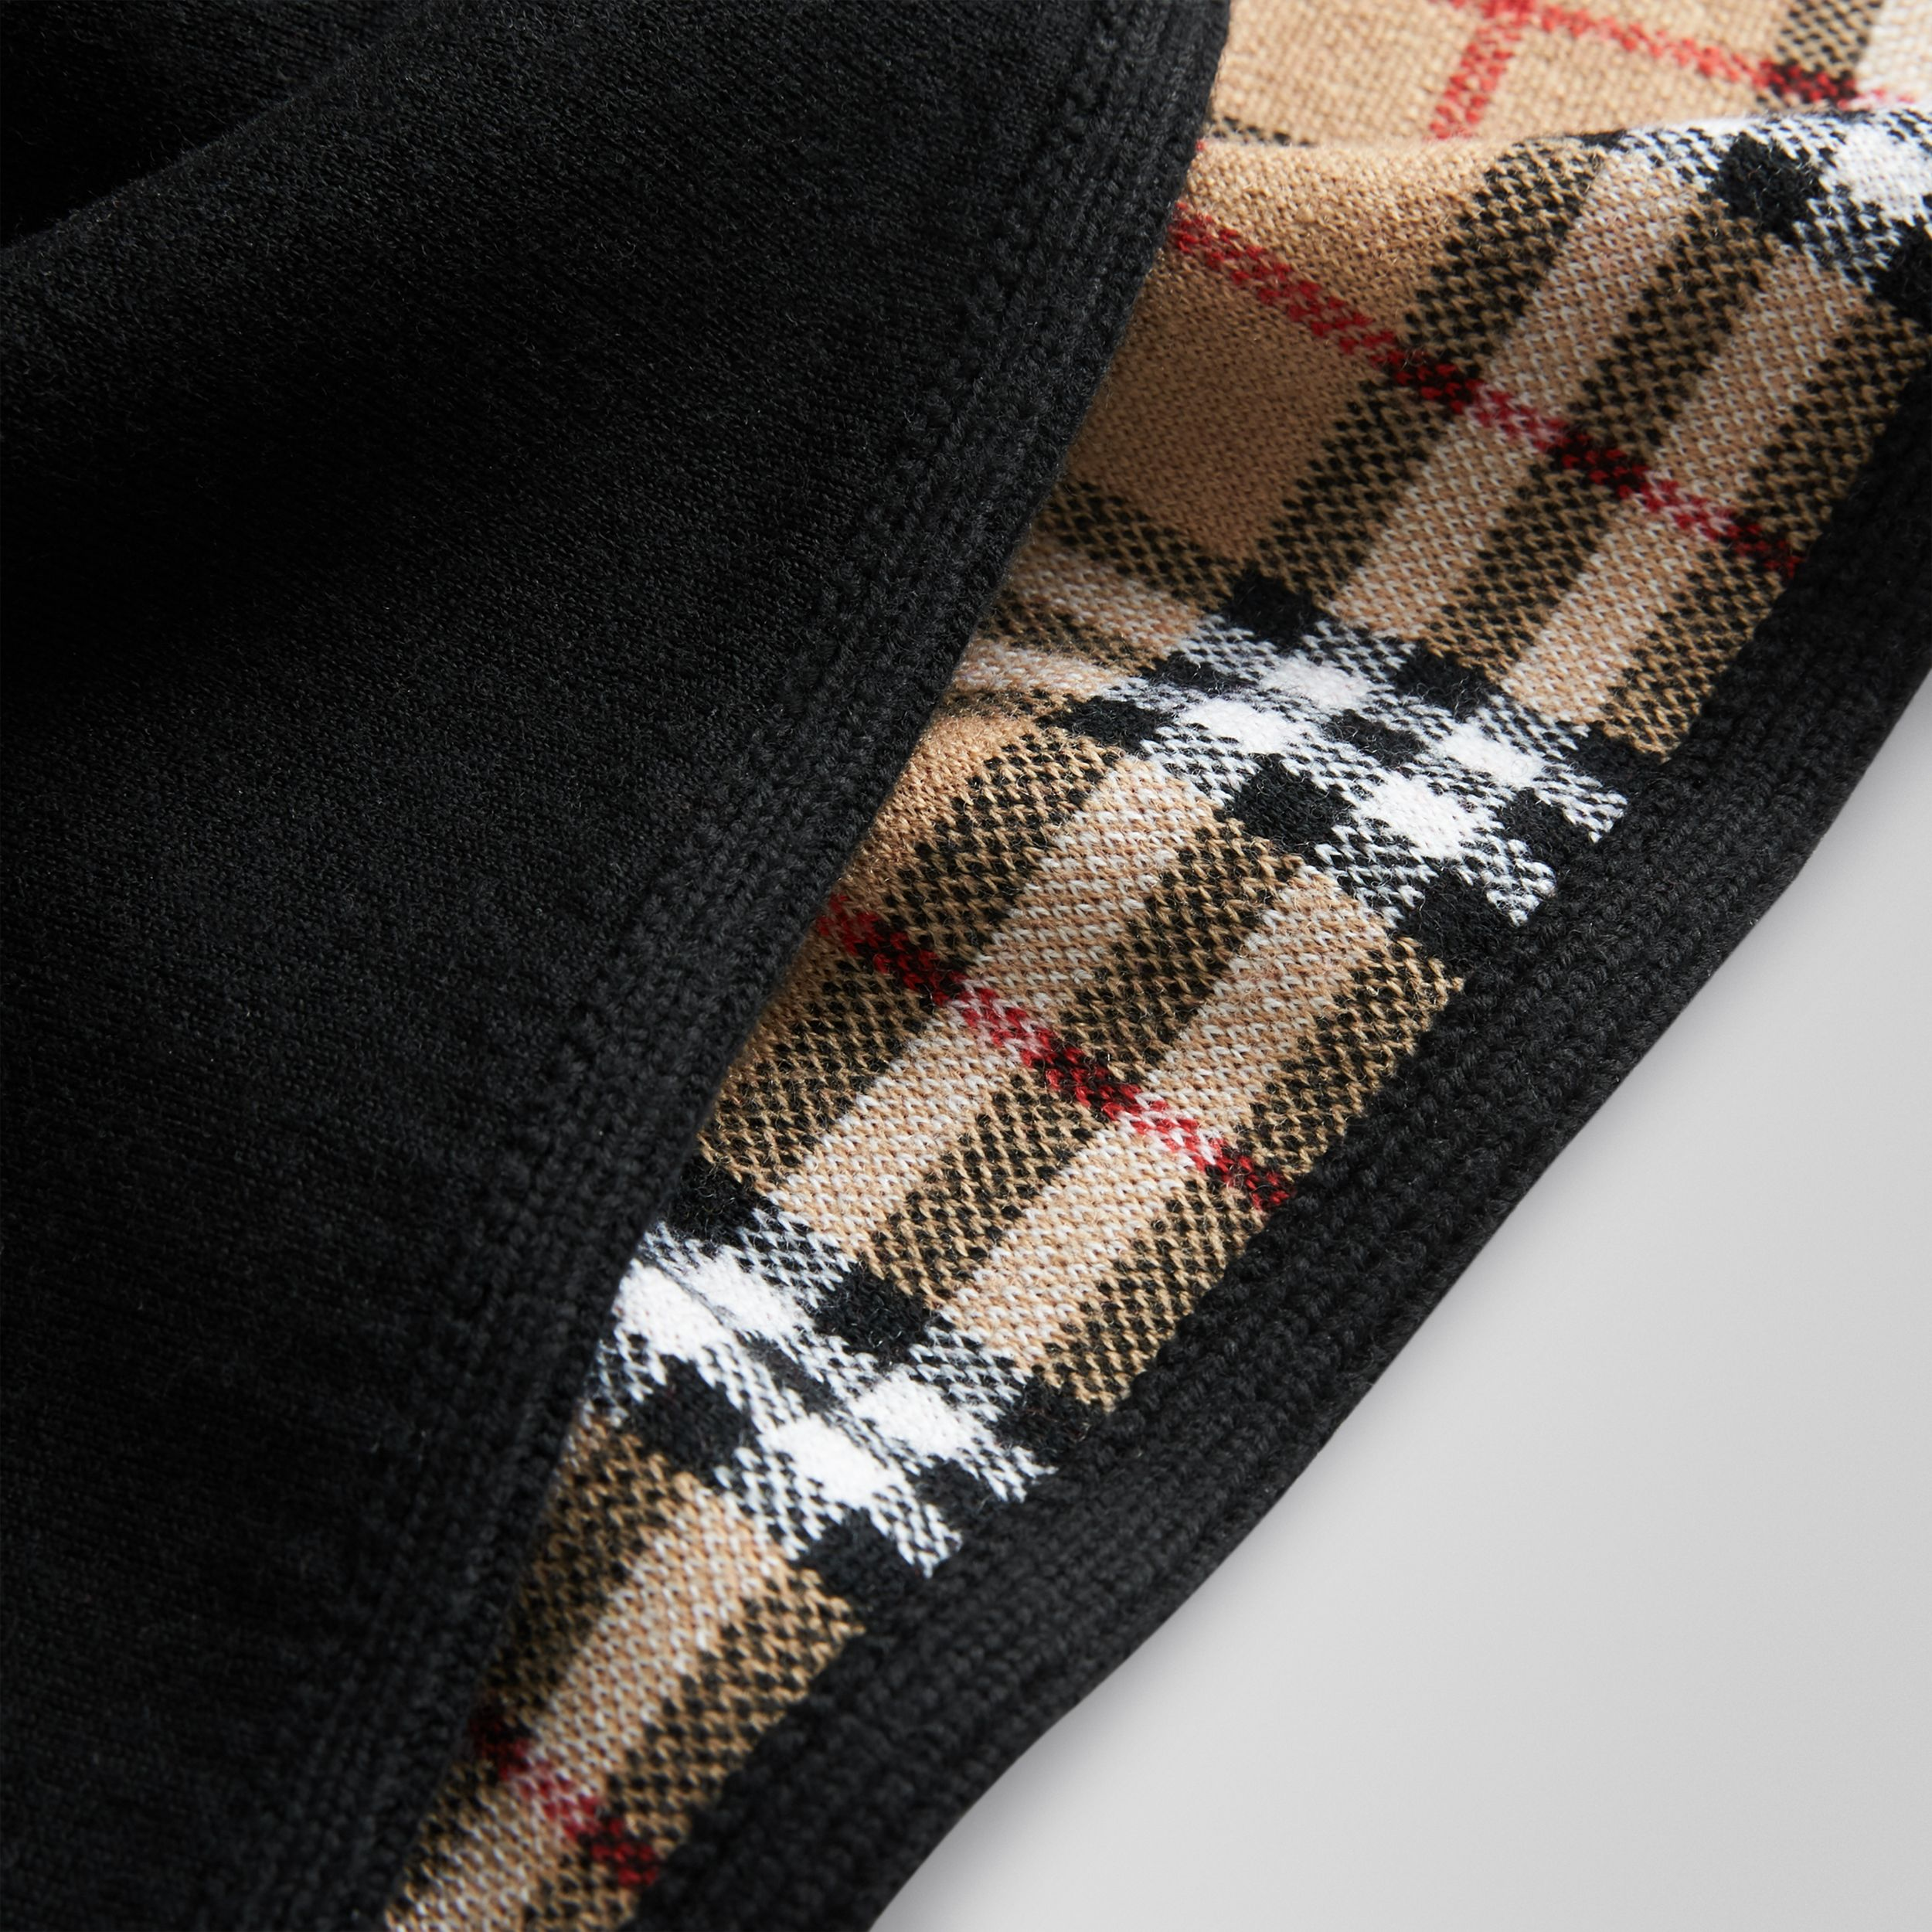 Reversible Vintage Check Merino Wool Jacquard Poncho in Black | Burberry - 2